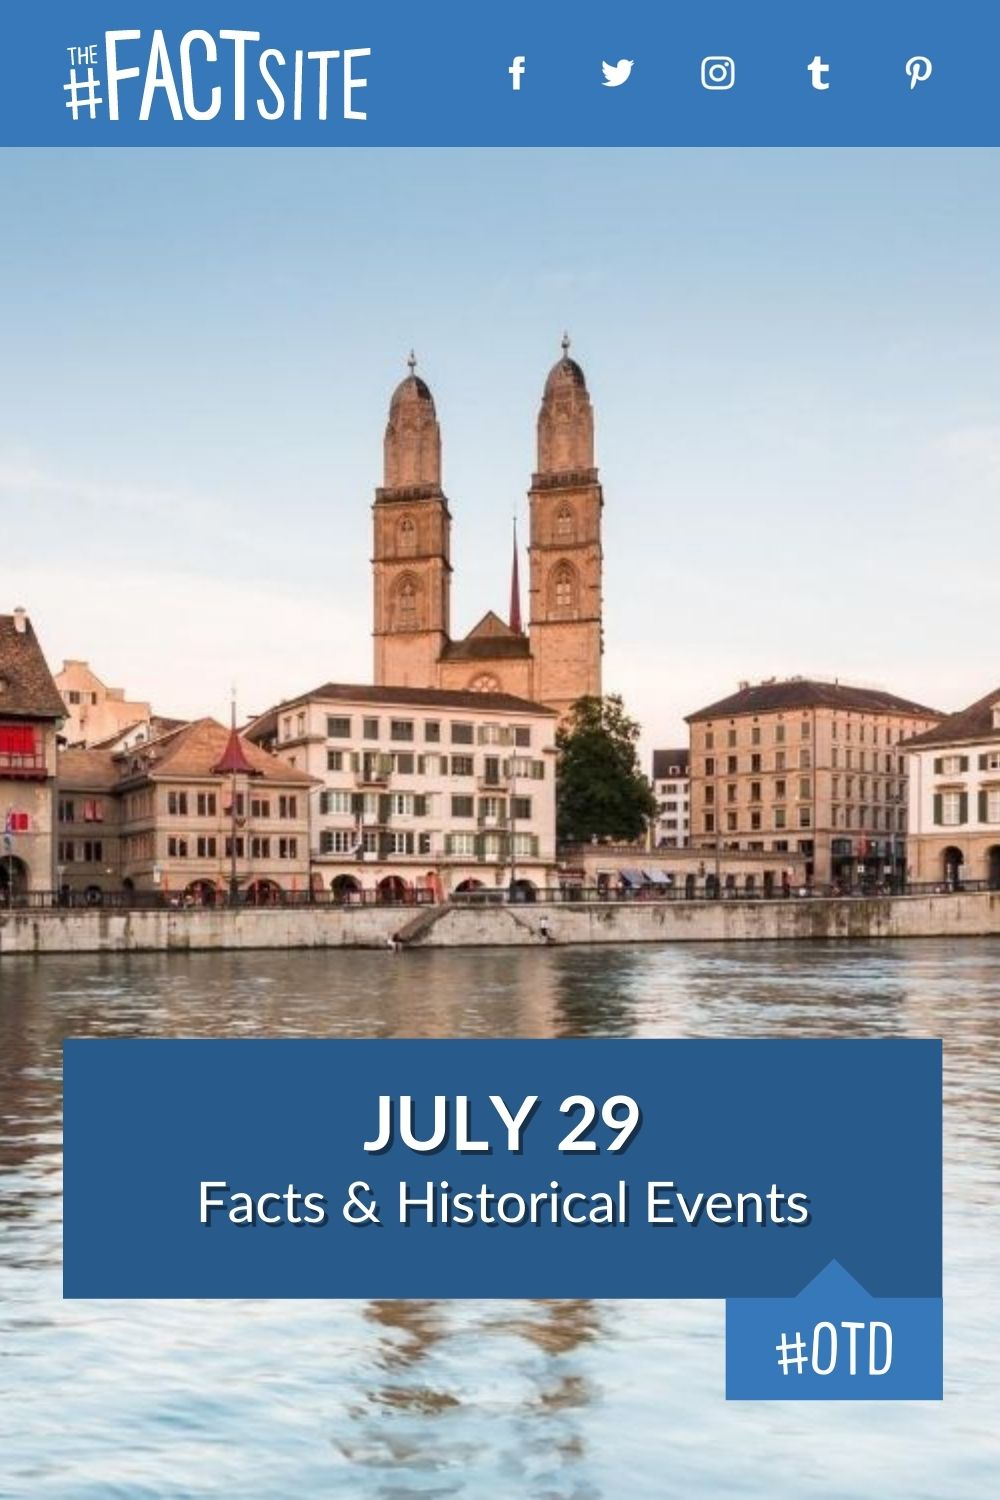 Facts & Historic Events That Happened on July 29